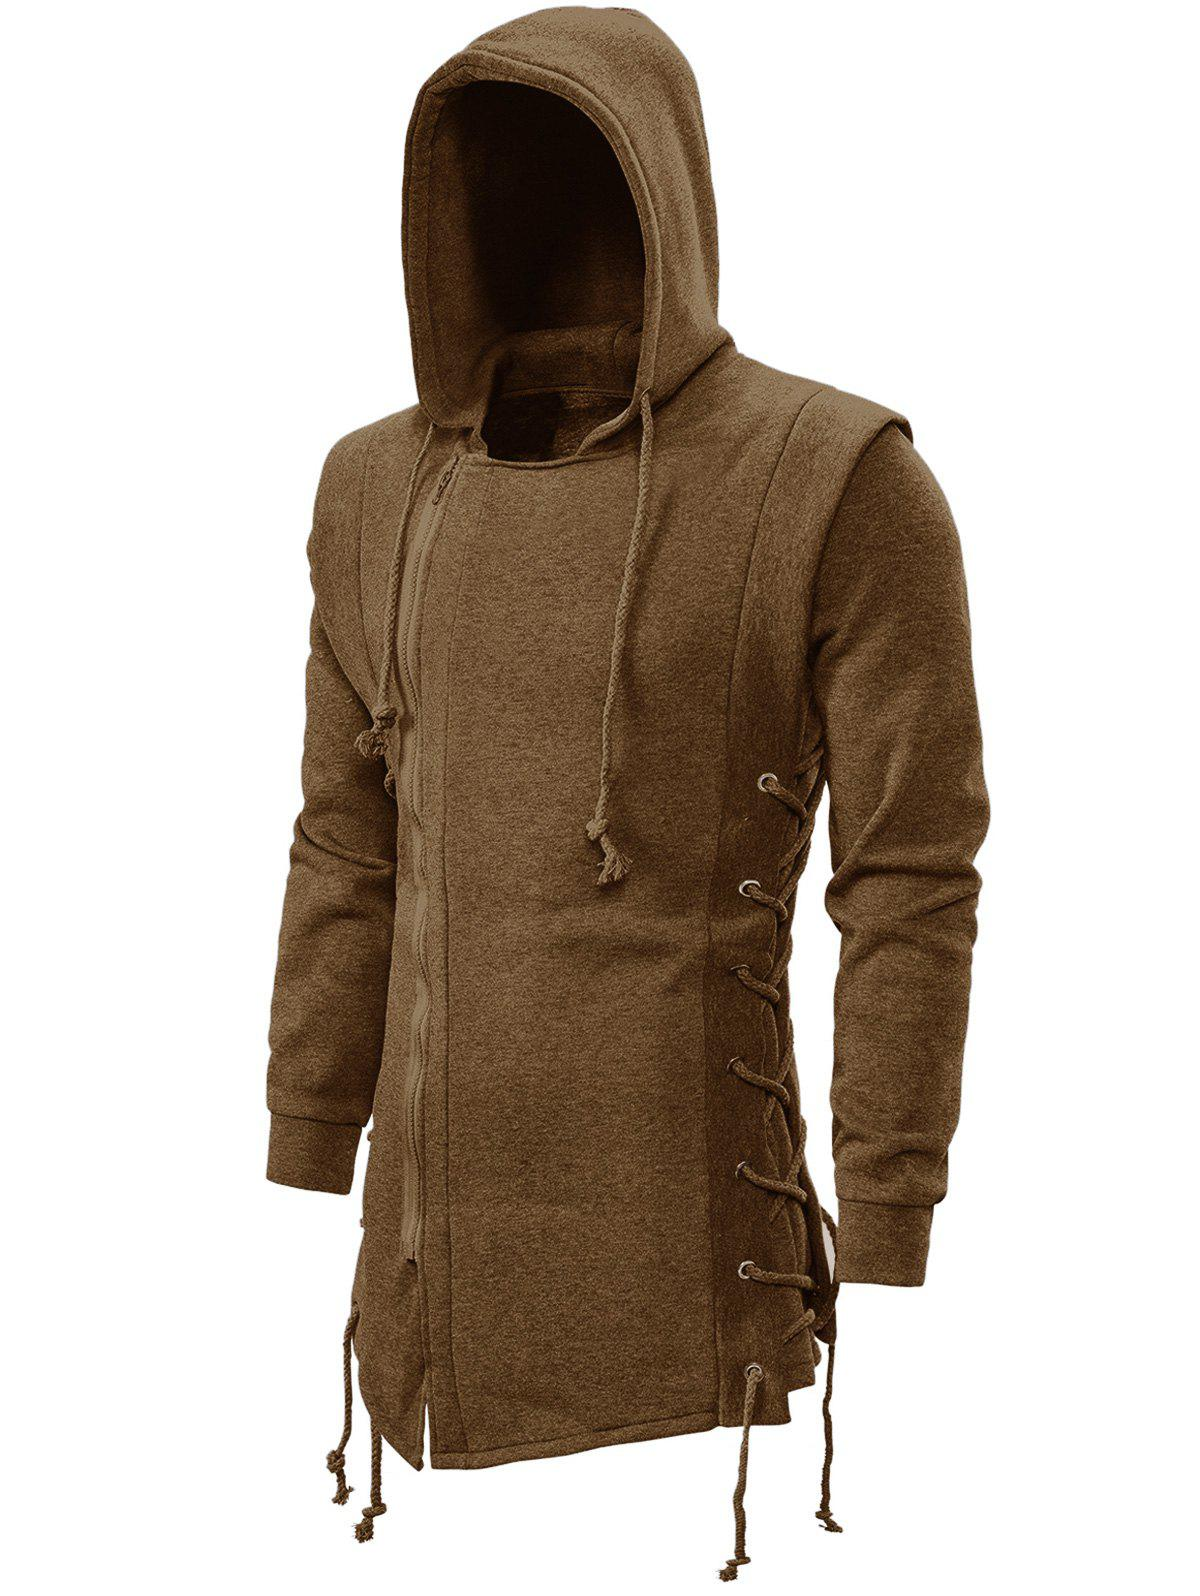 Affordable Side Lace Up Fleece Gothic Hoodie